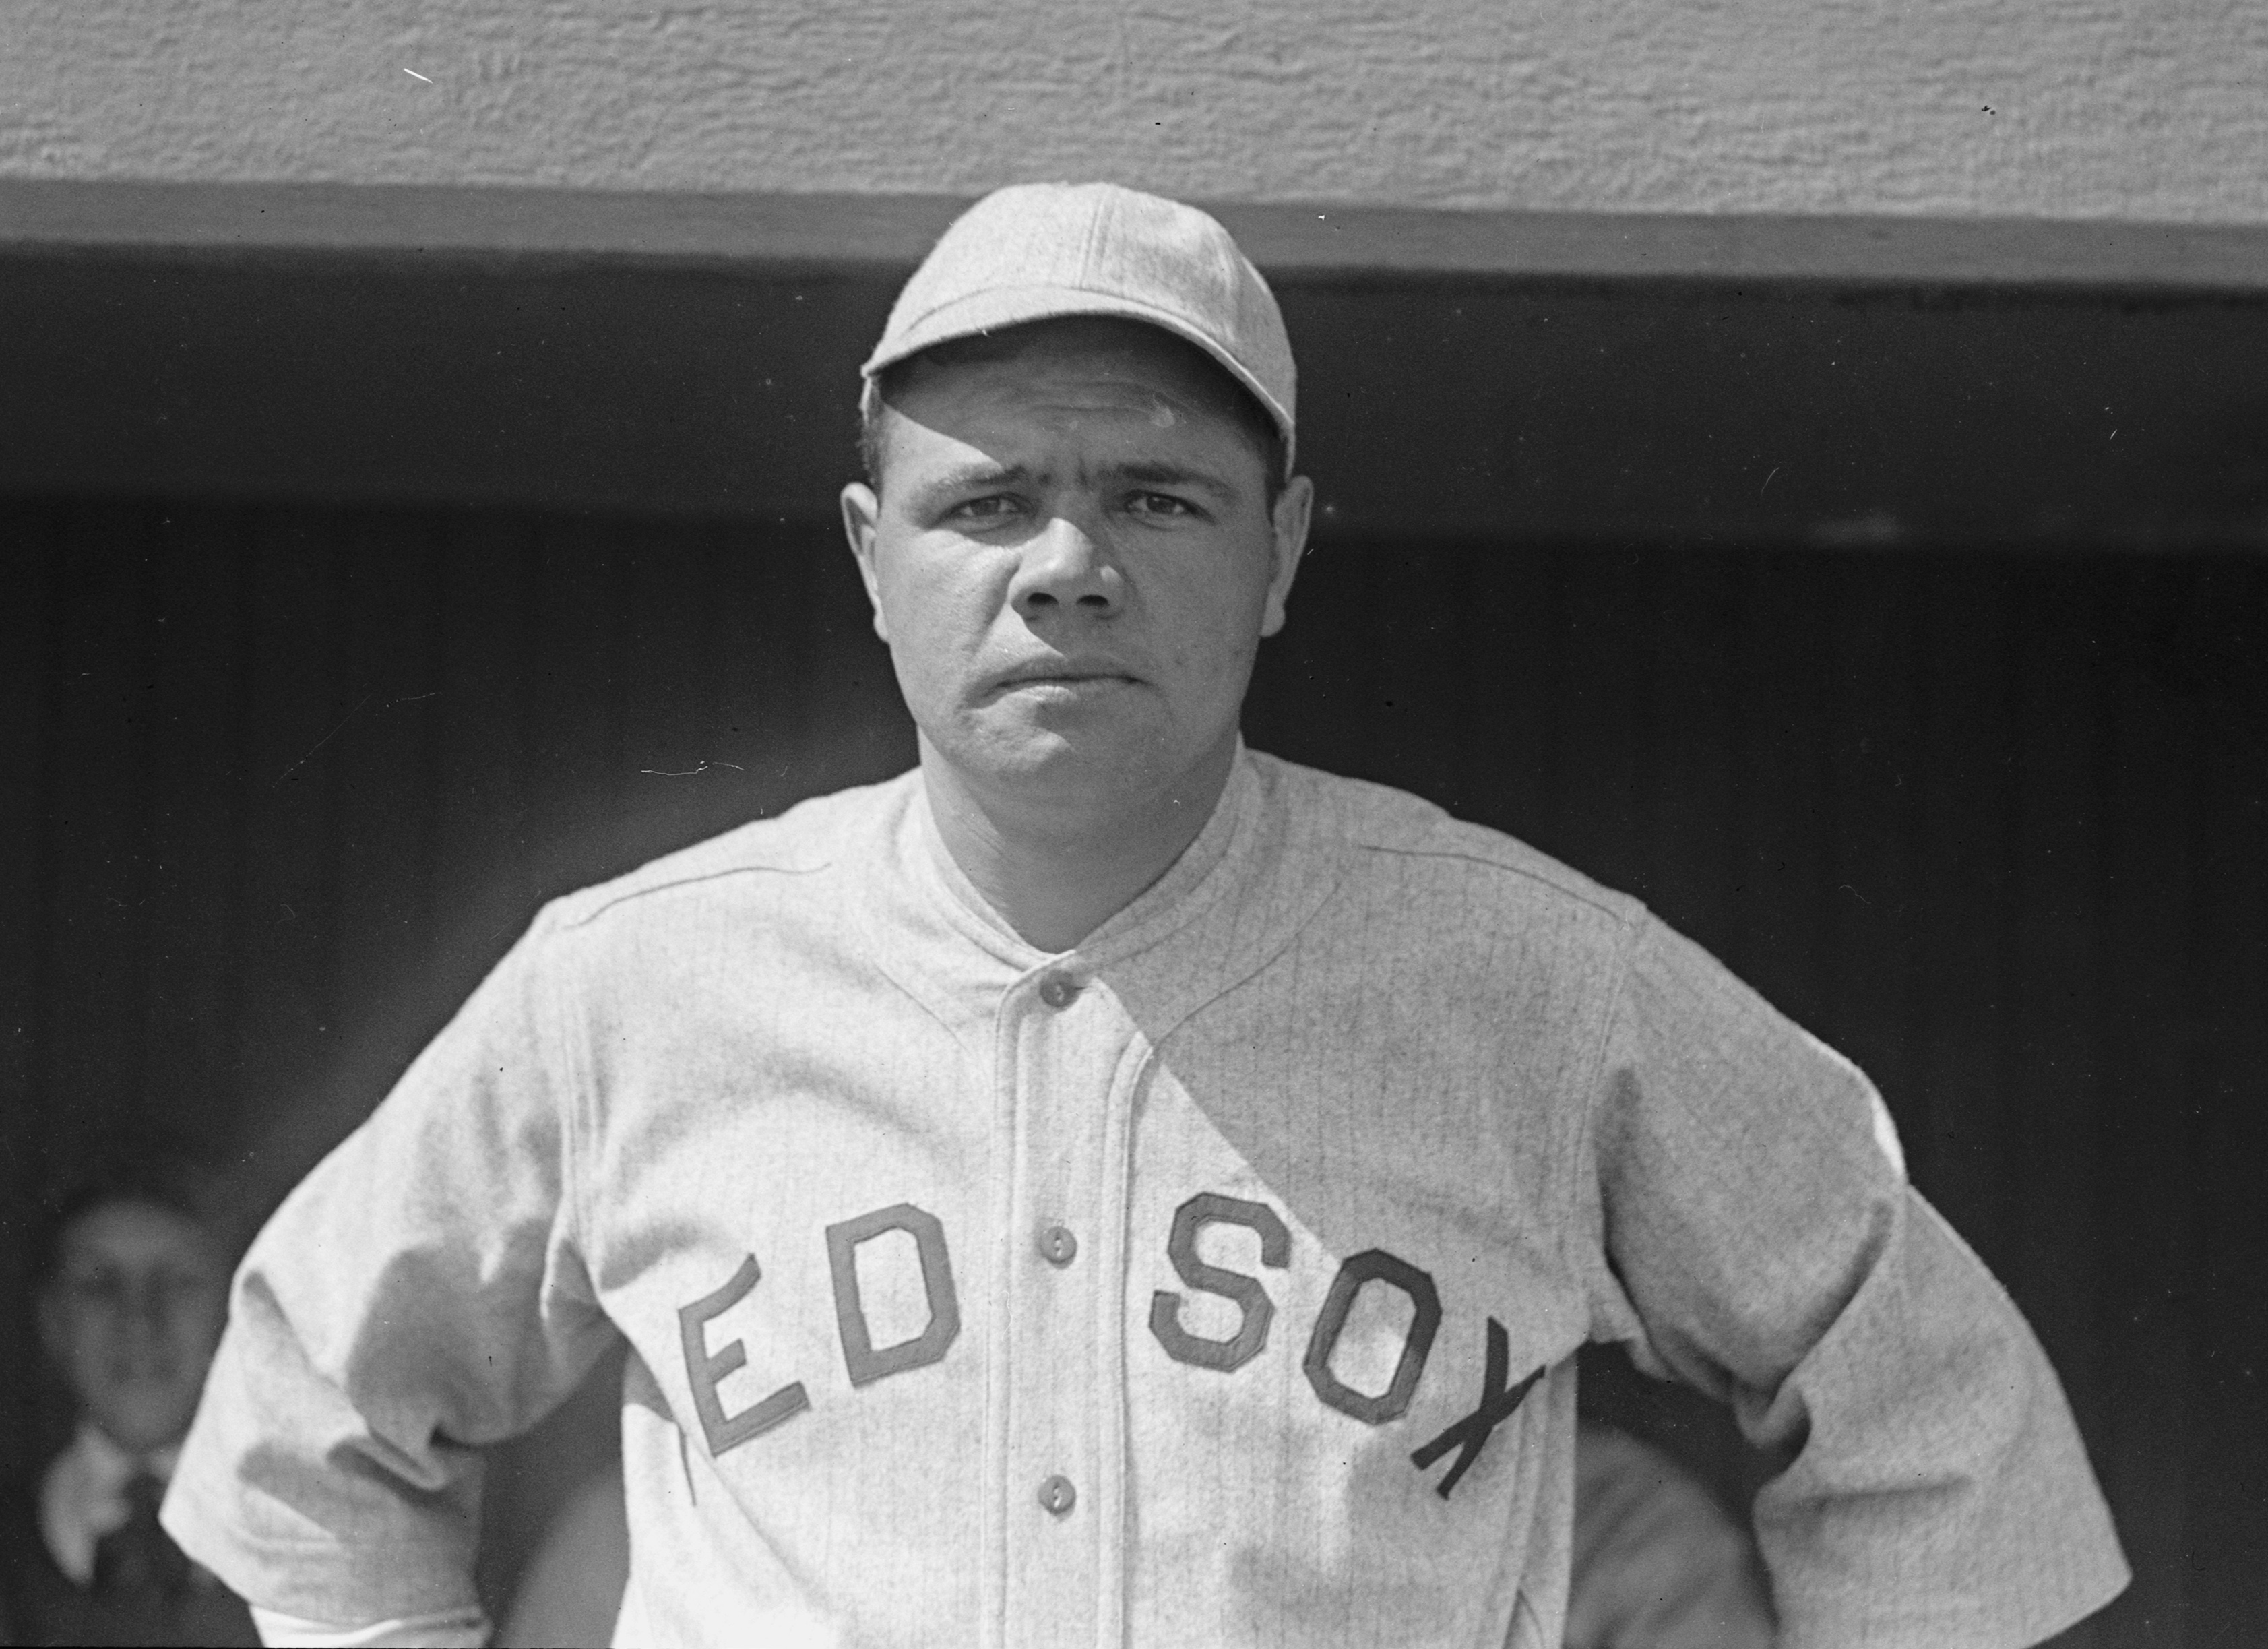 Babe Ruth - Wikipedia, the free encyclopedia